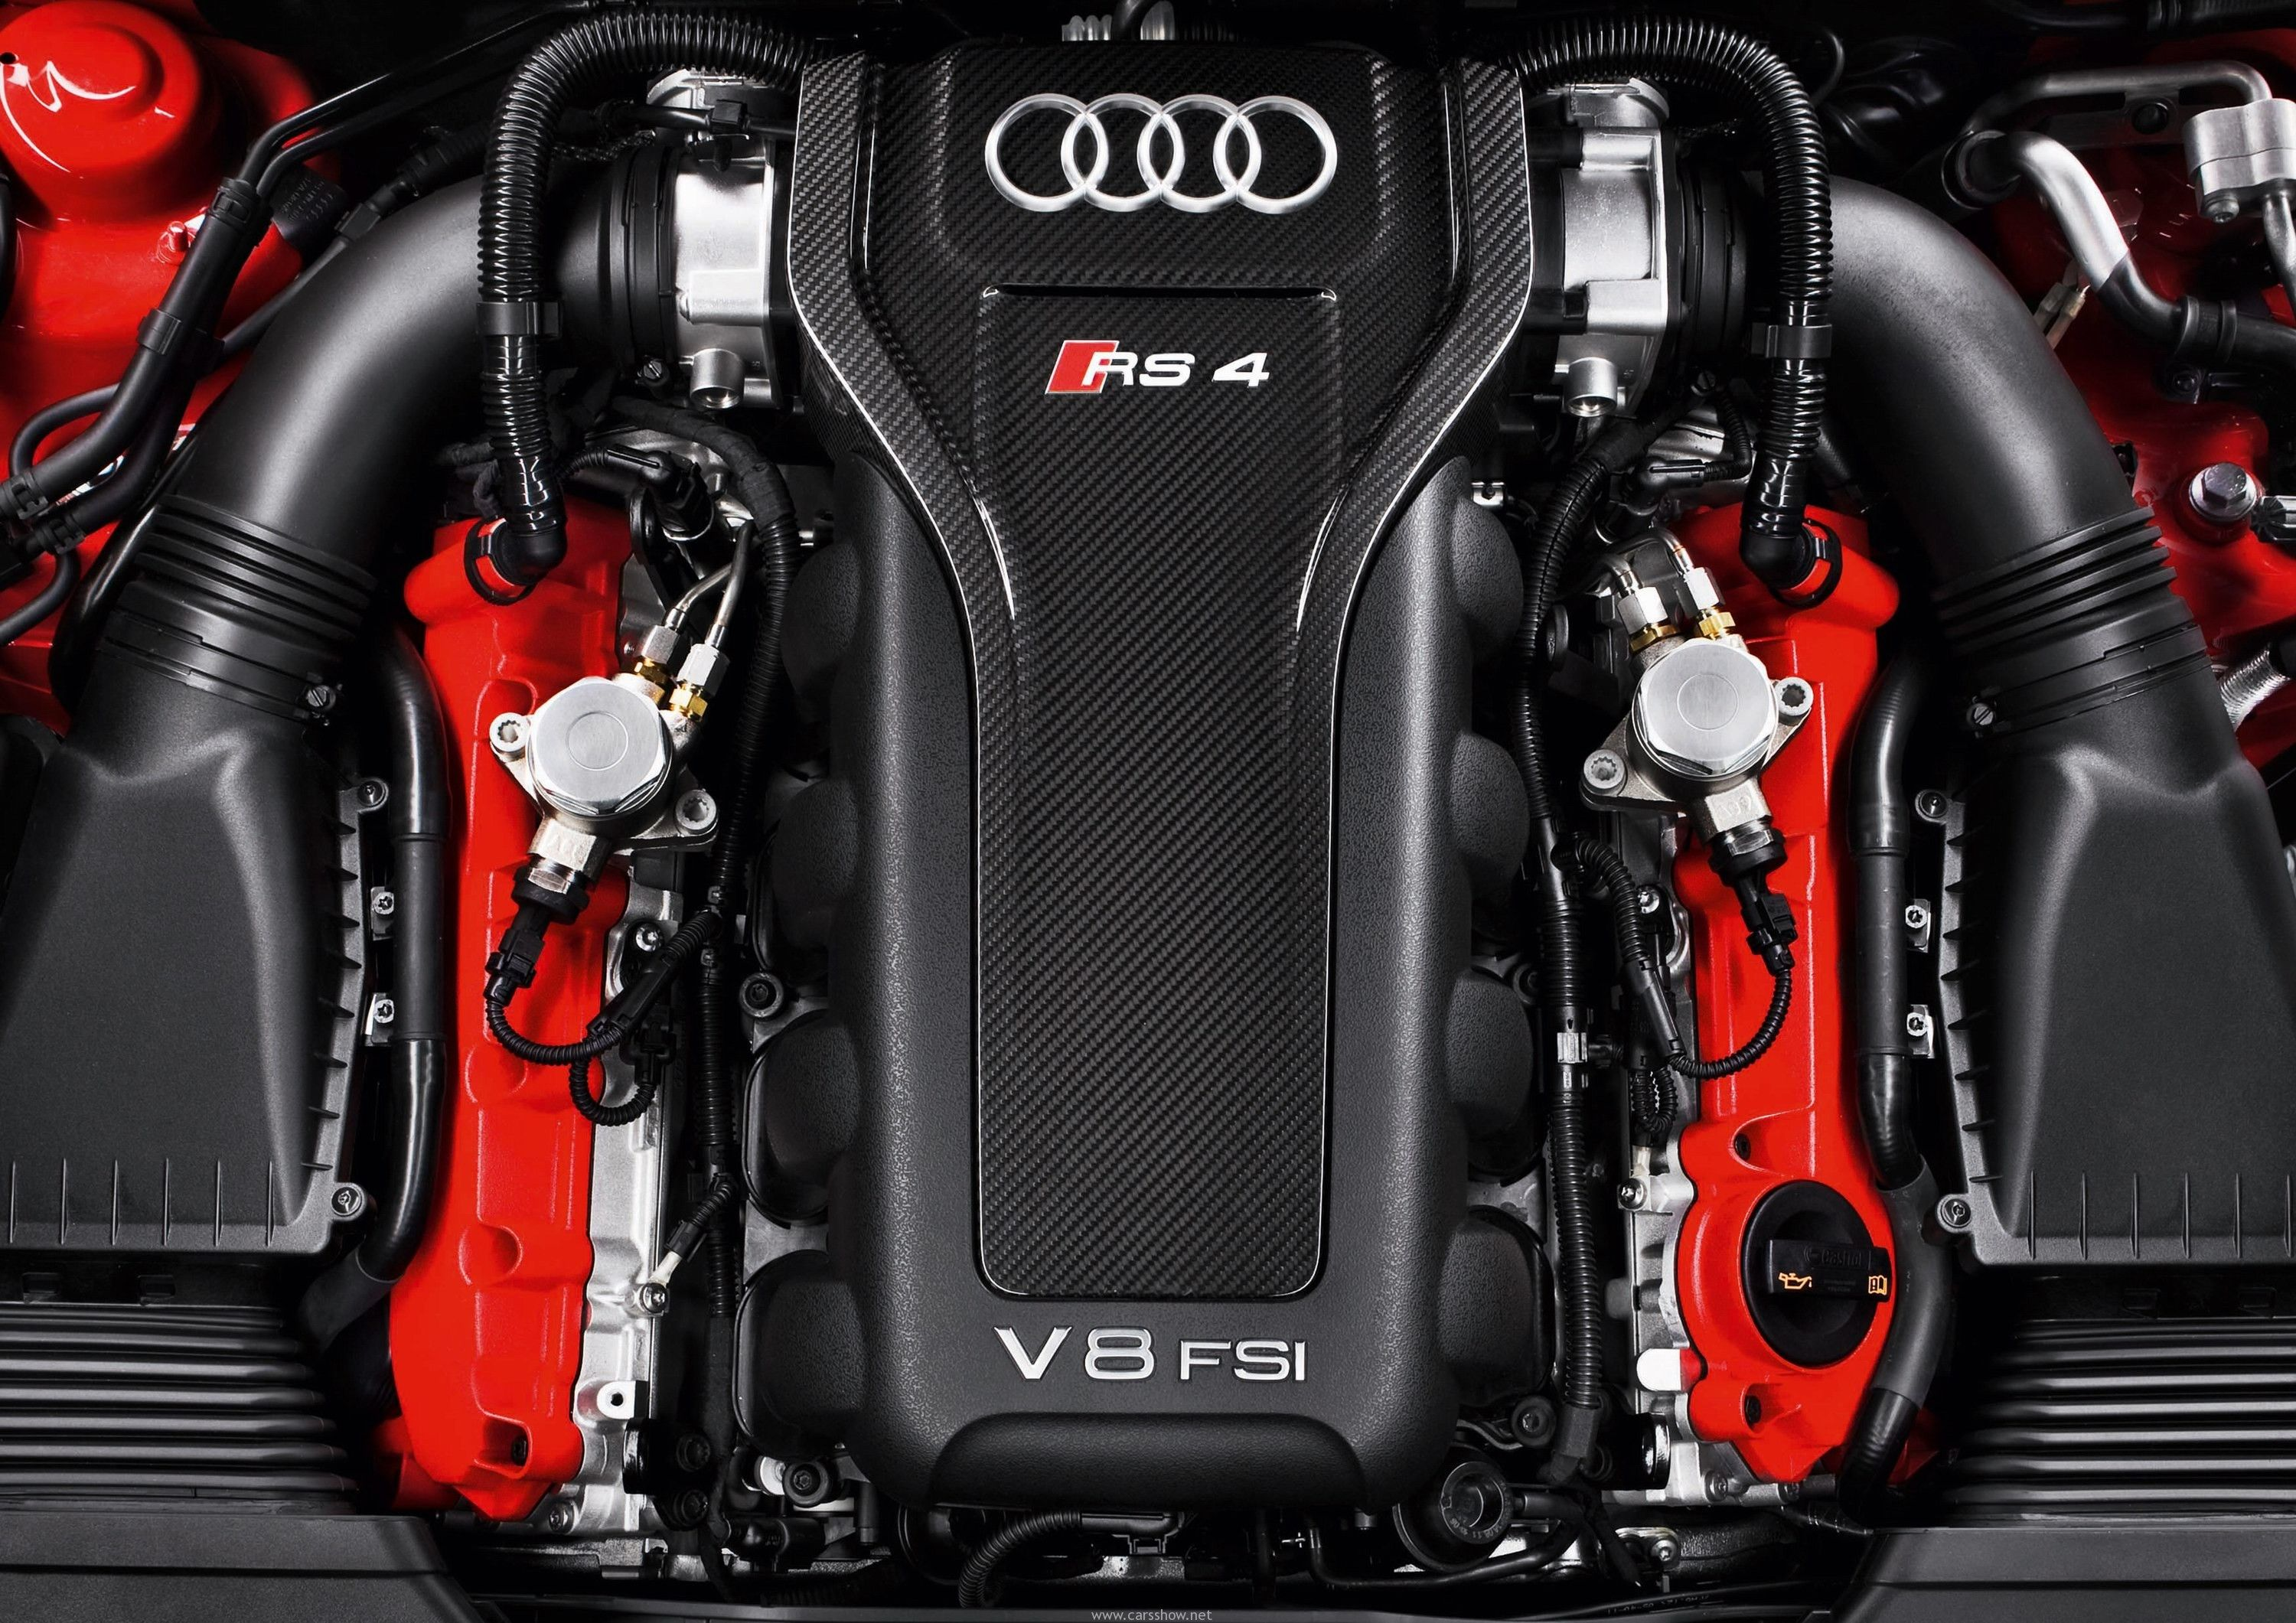 button models drive engine center these that locos abs and motor you engines have on wheel four permanent to differential enables audi parallel a all rear lock en the console